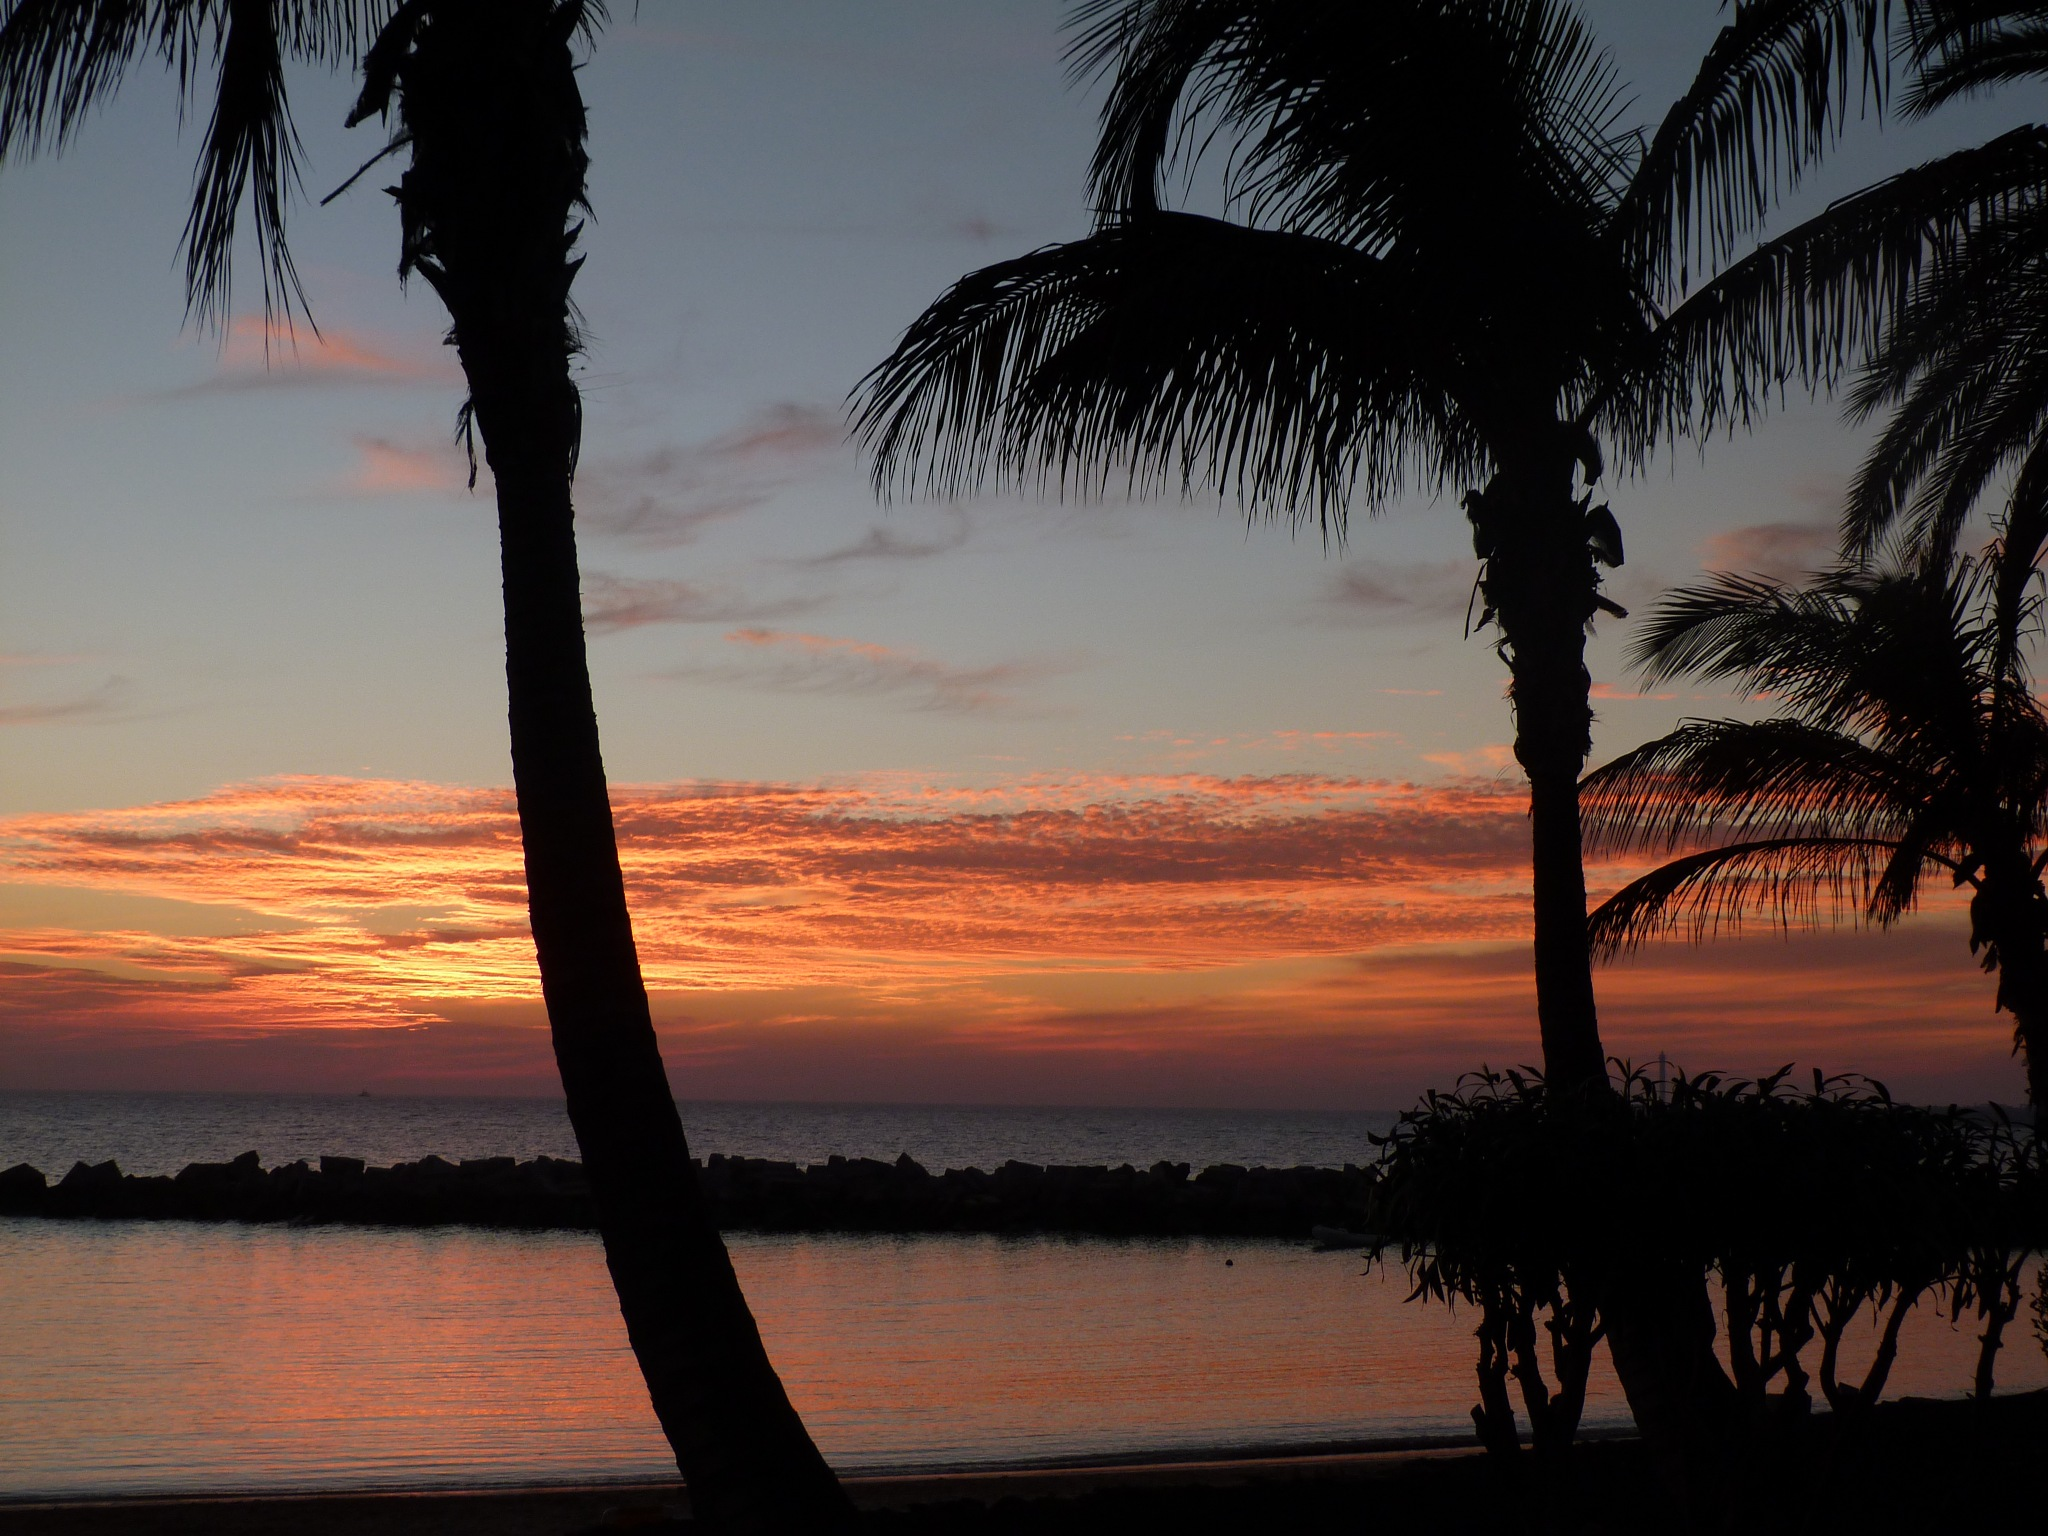 Sunset through the palms by Launa